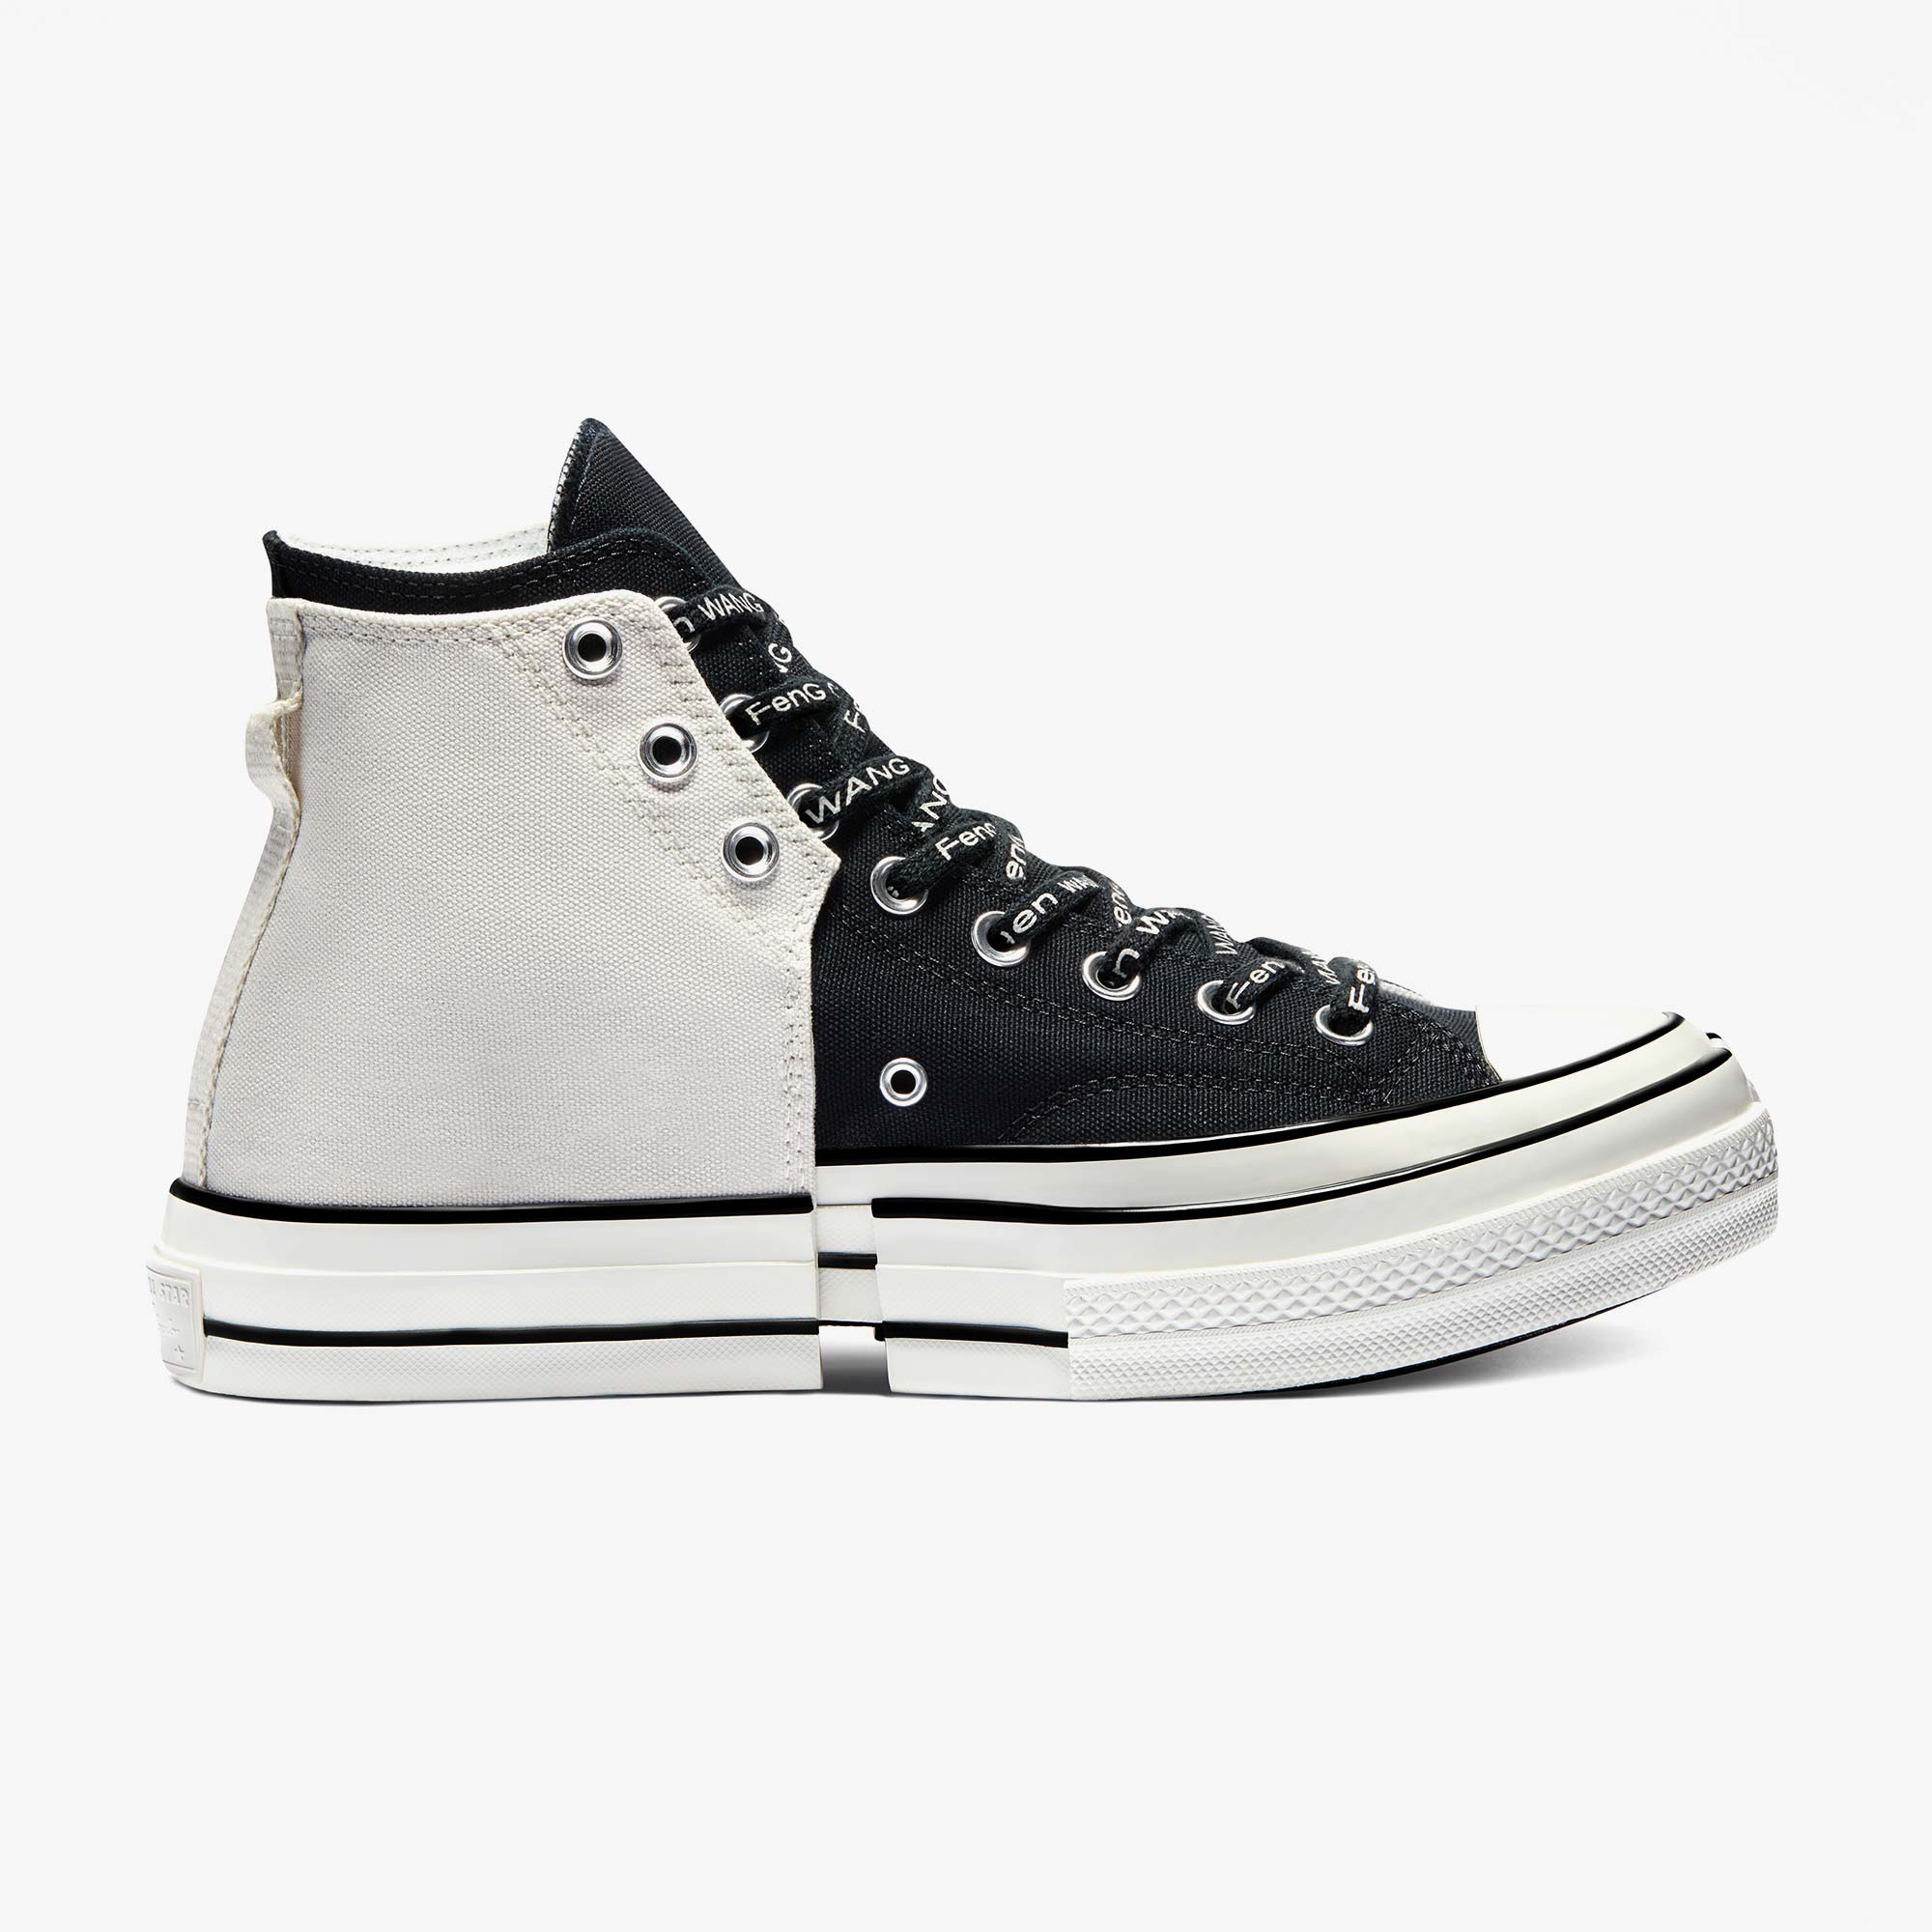 Converse Converse x Feng Chen Wang 2 In 1 Chuck Taylor 70 Hi - Ivory 9